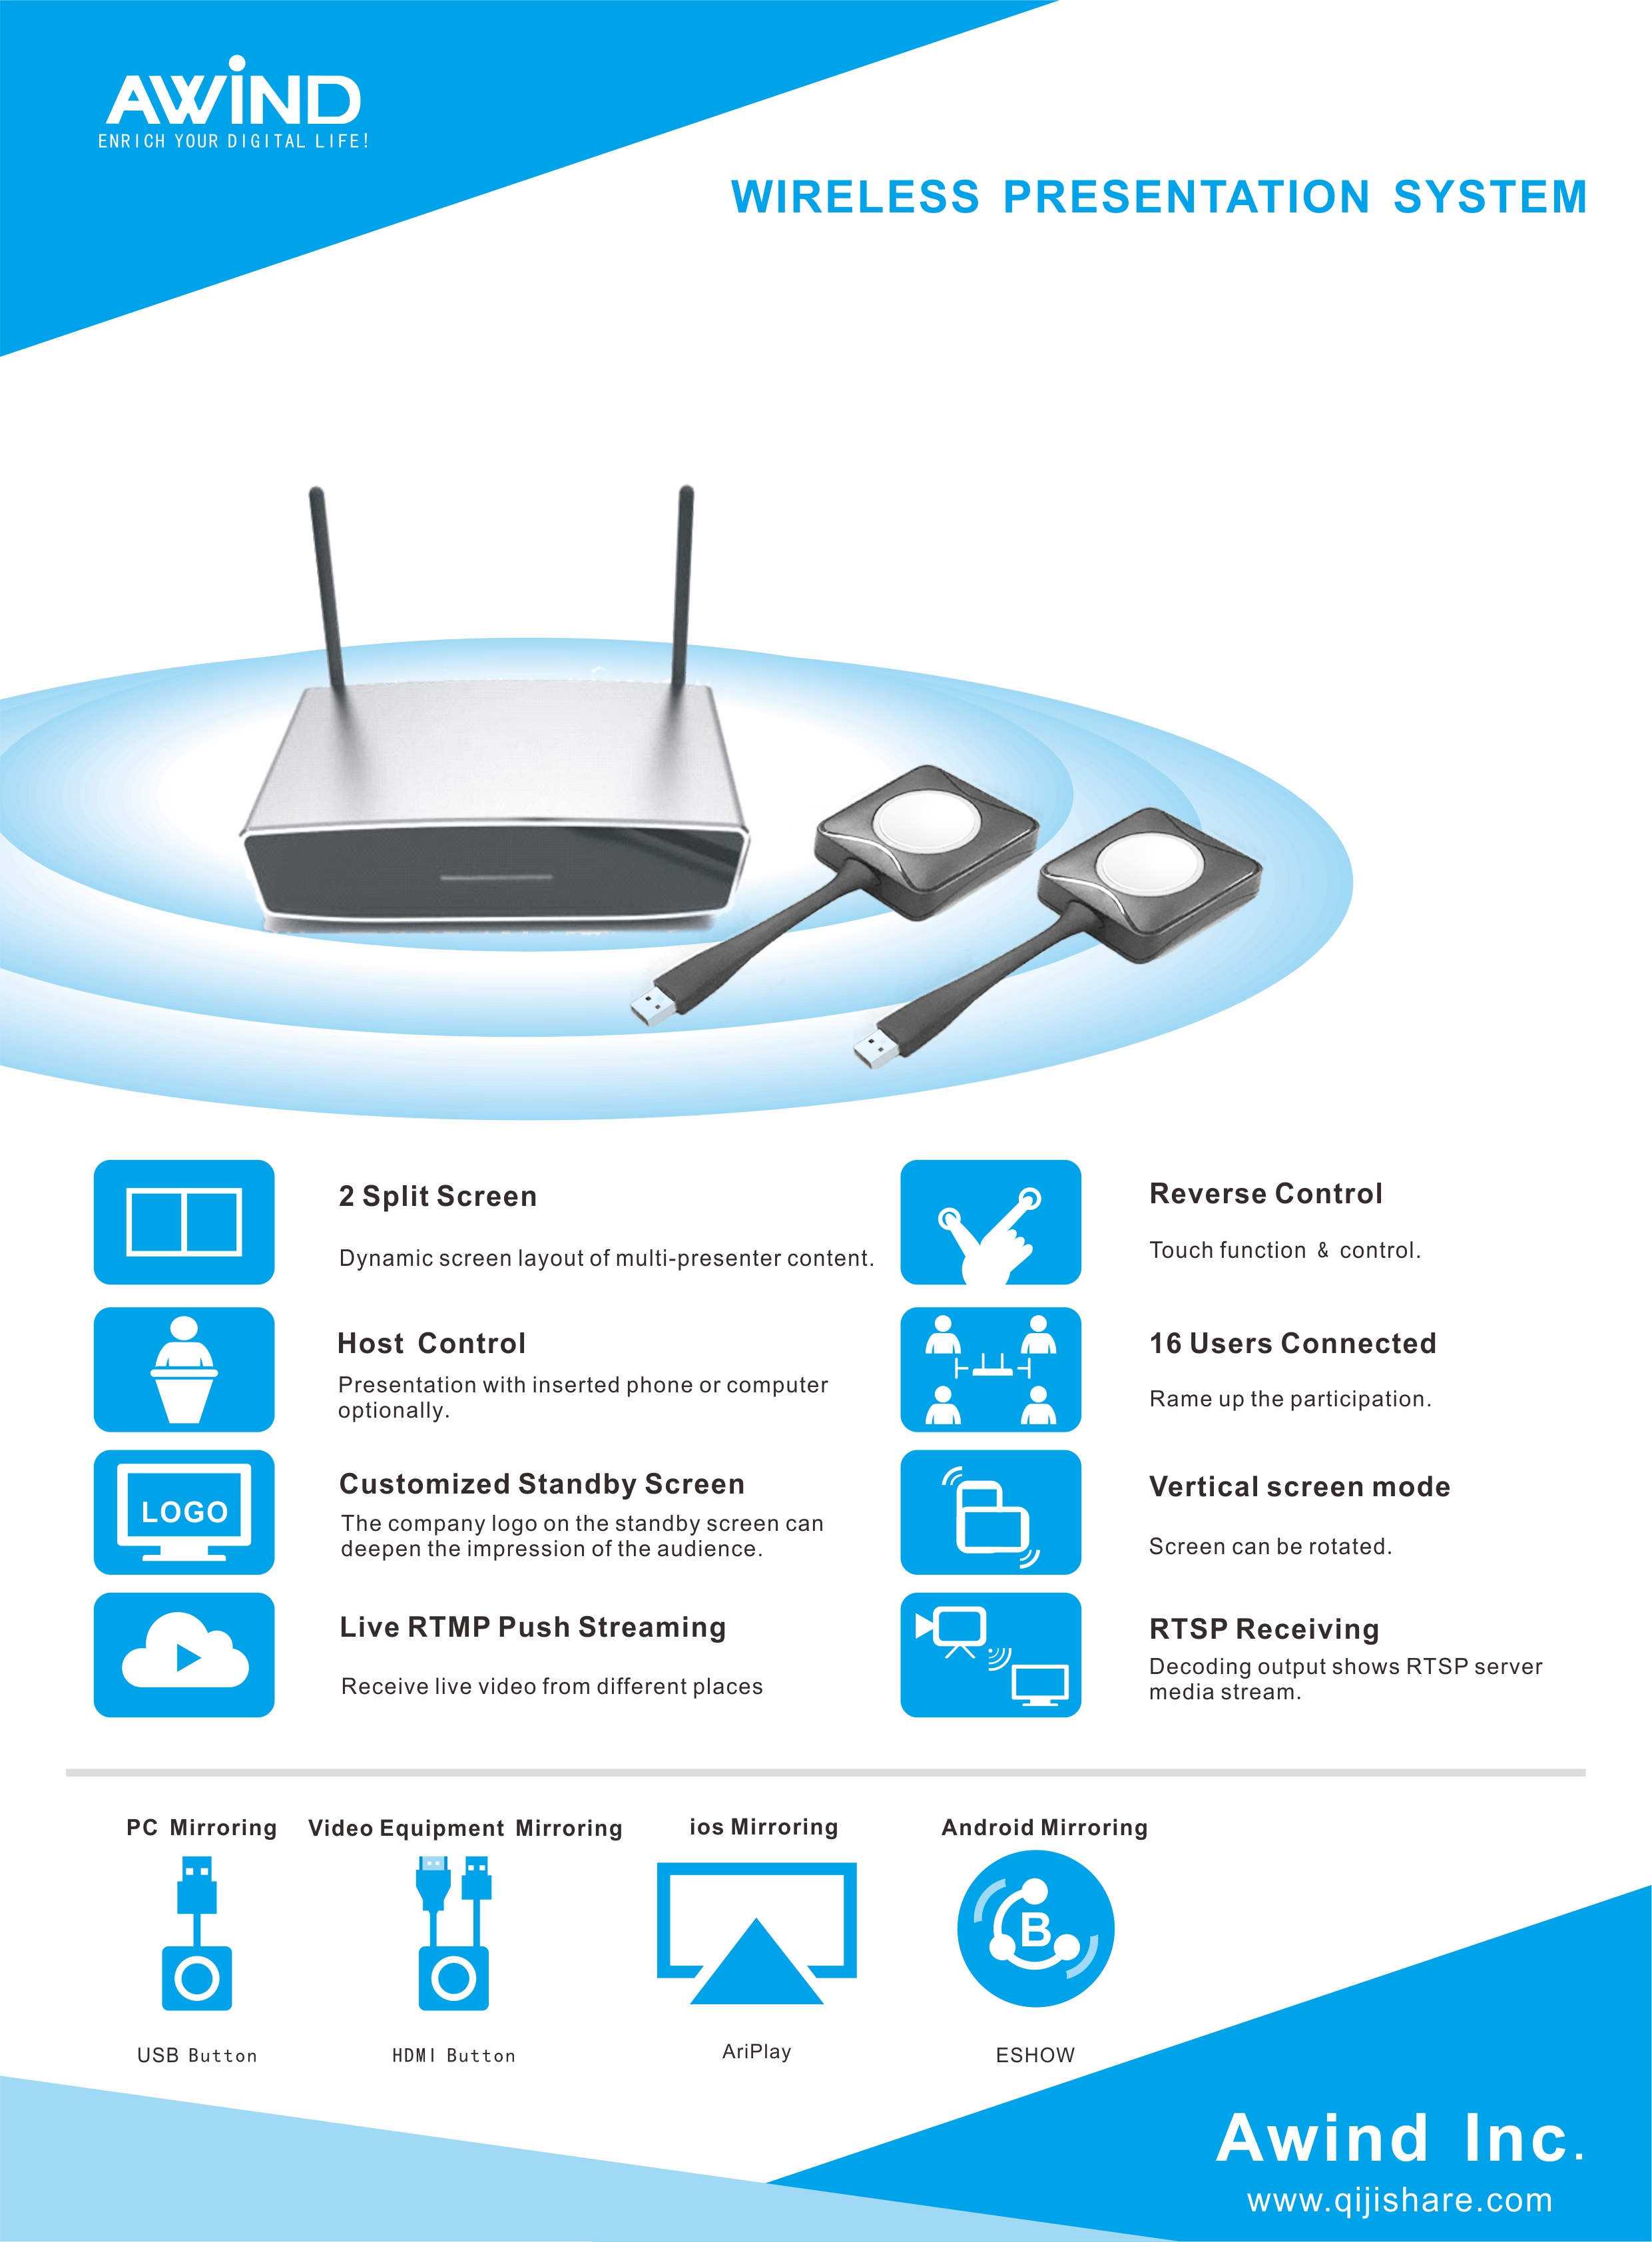 AWiND A-810 + wireless conference collaboration system